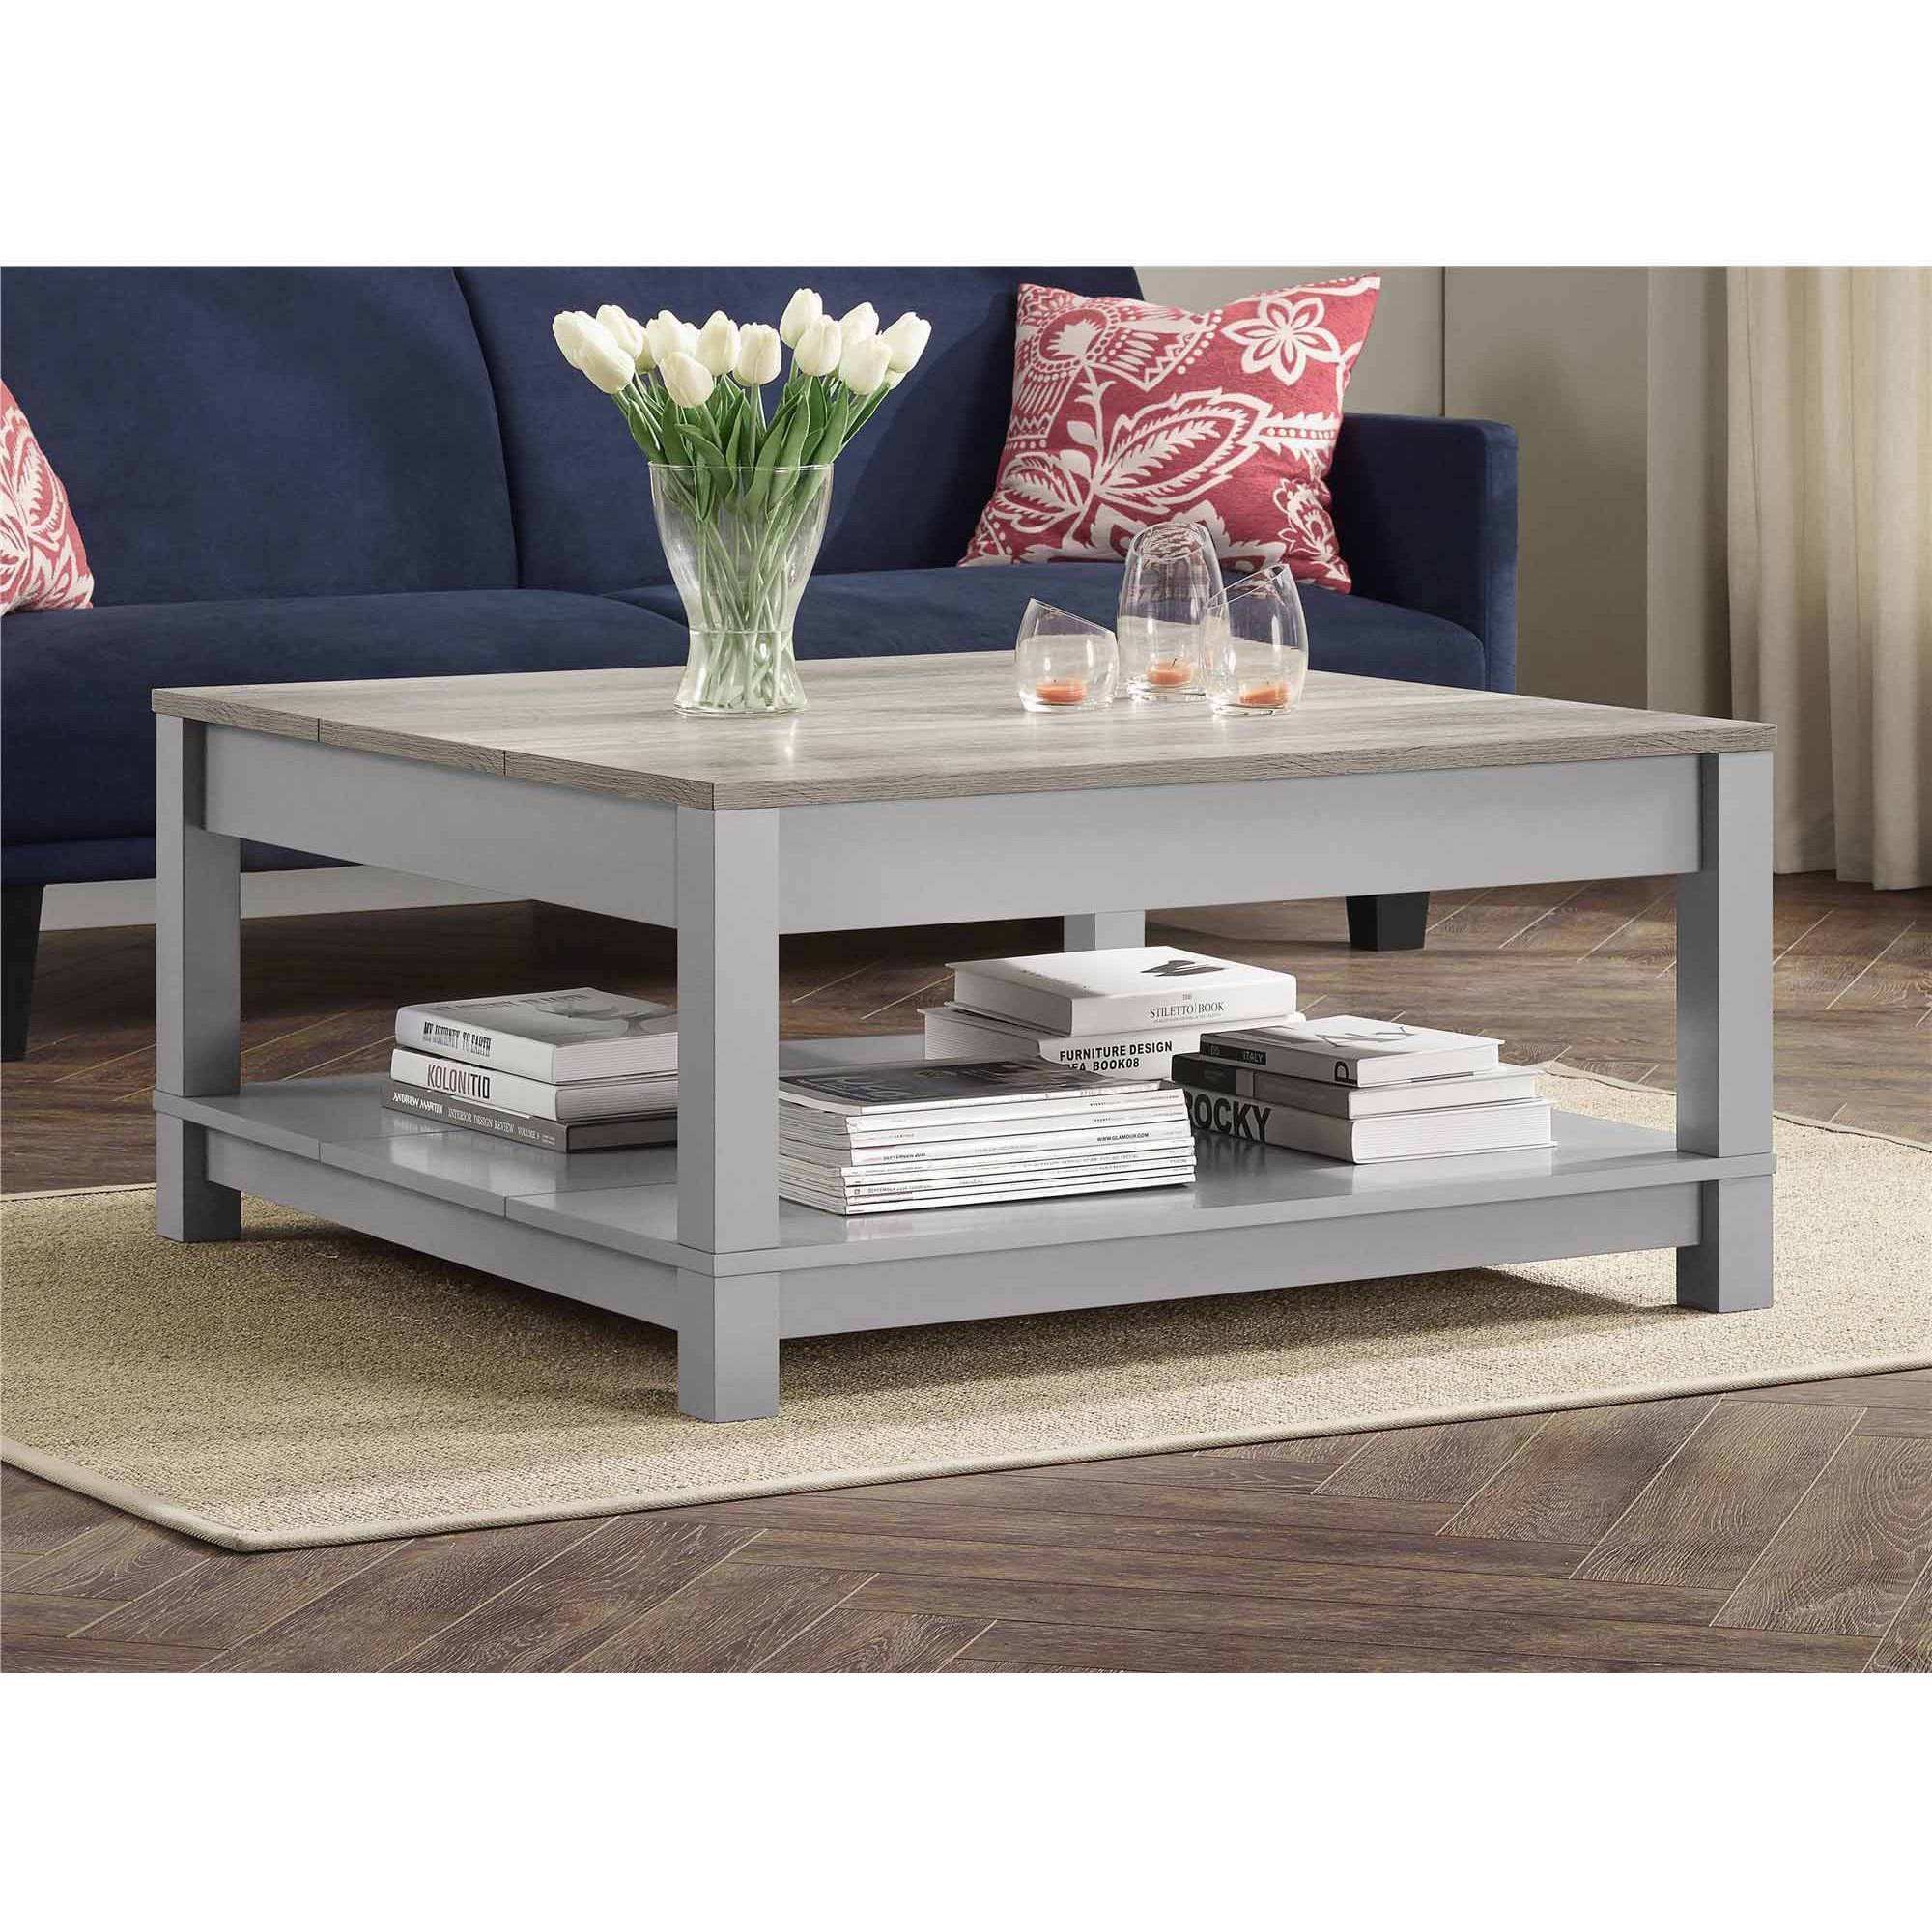 free shipping better homes and gardens langley bay coffee table multiple colors hemnes lift top accent hardwood tile solid pine ikea console nautical themed end tables black white